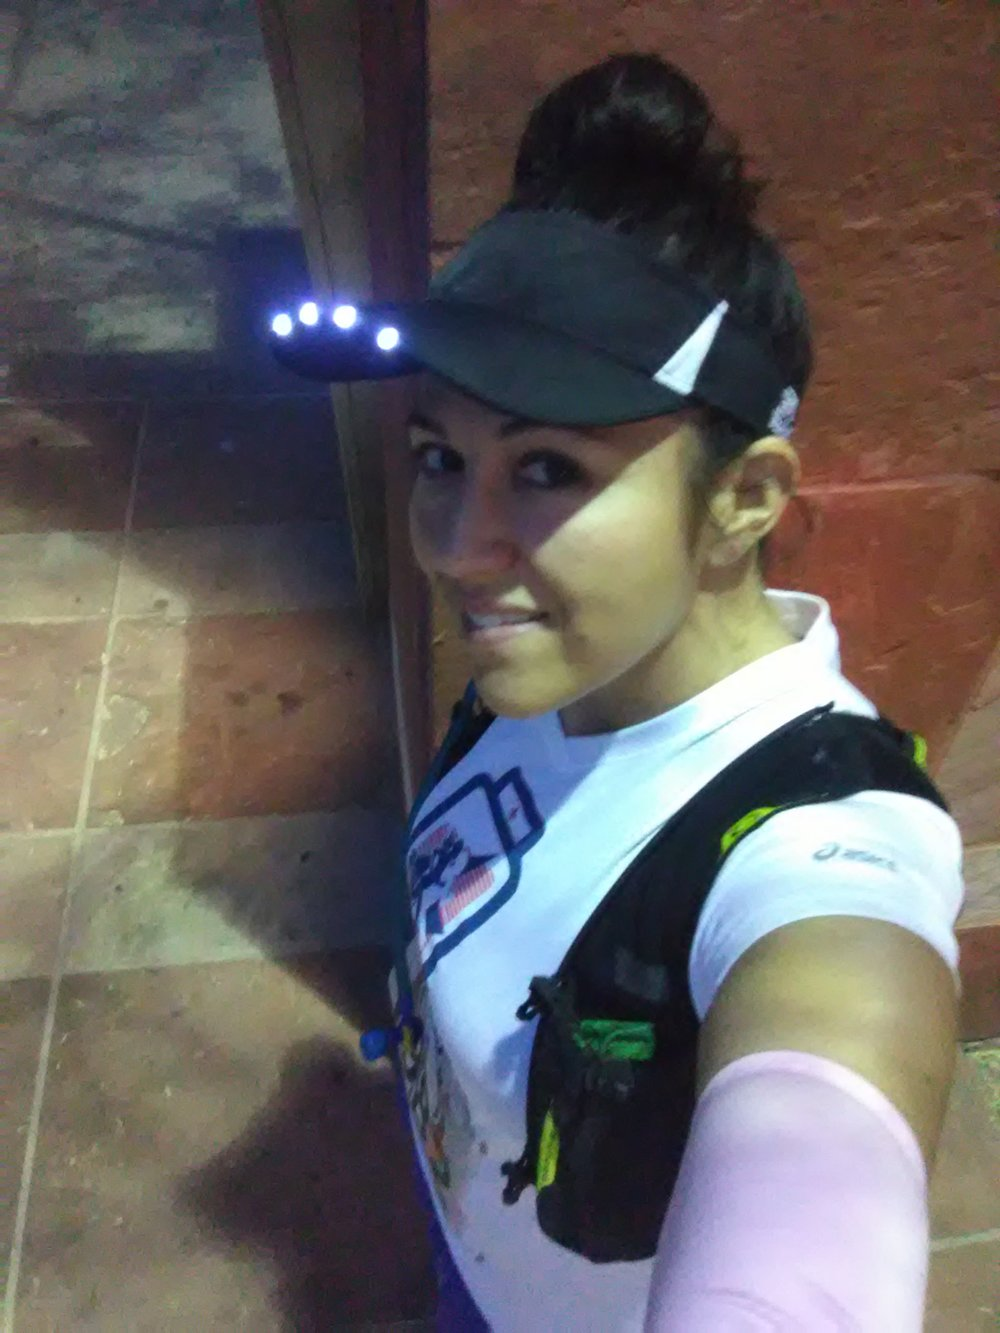 The startline was dark at the November 4, 2018 3TV  Phoenix Half Marathon . I came prepared to pace the 2:40 group with my  SPIbeams LED Visor .